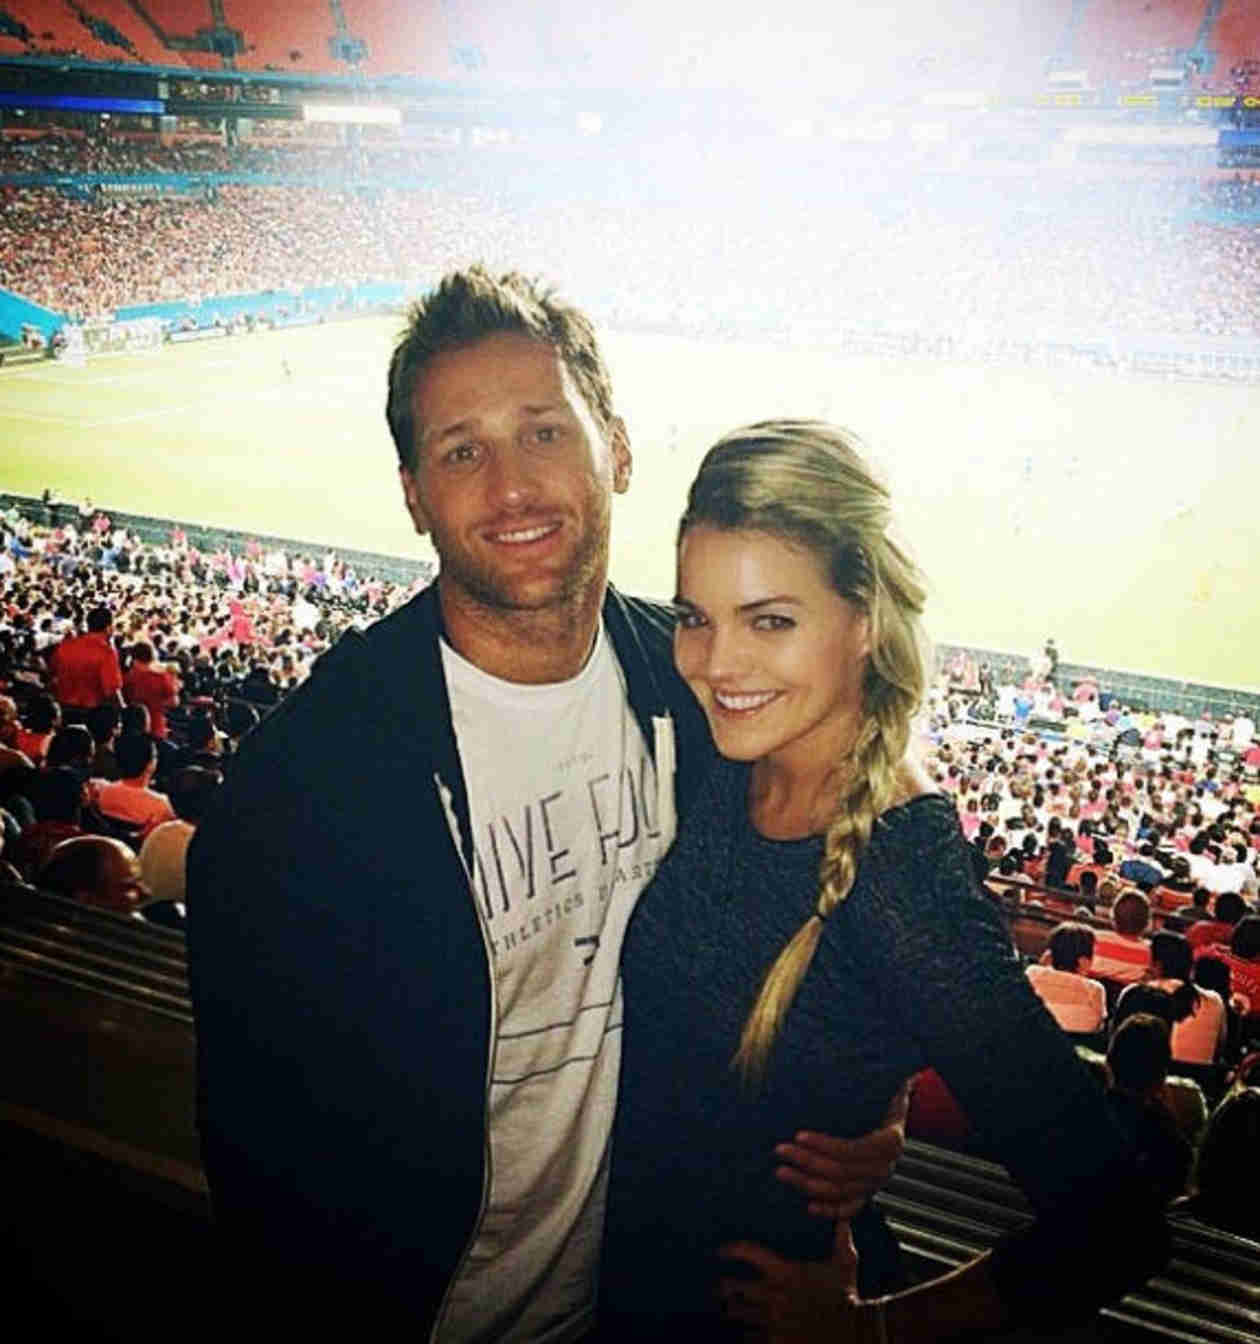 Juan Pablo Galavis Has a Super Embarrassing Moment — Get the Details Here!